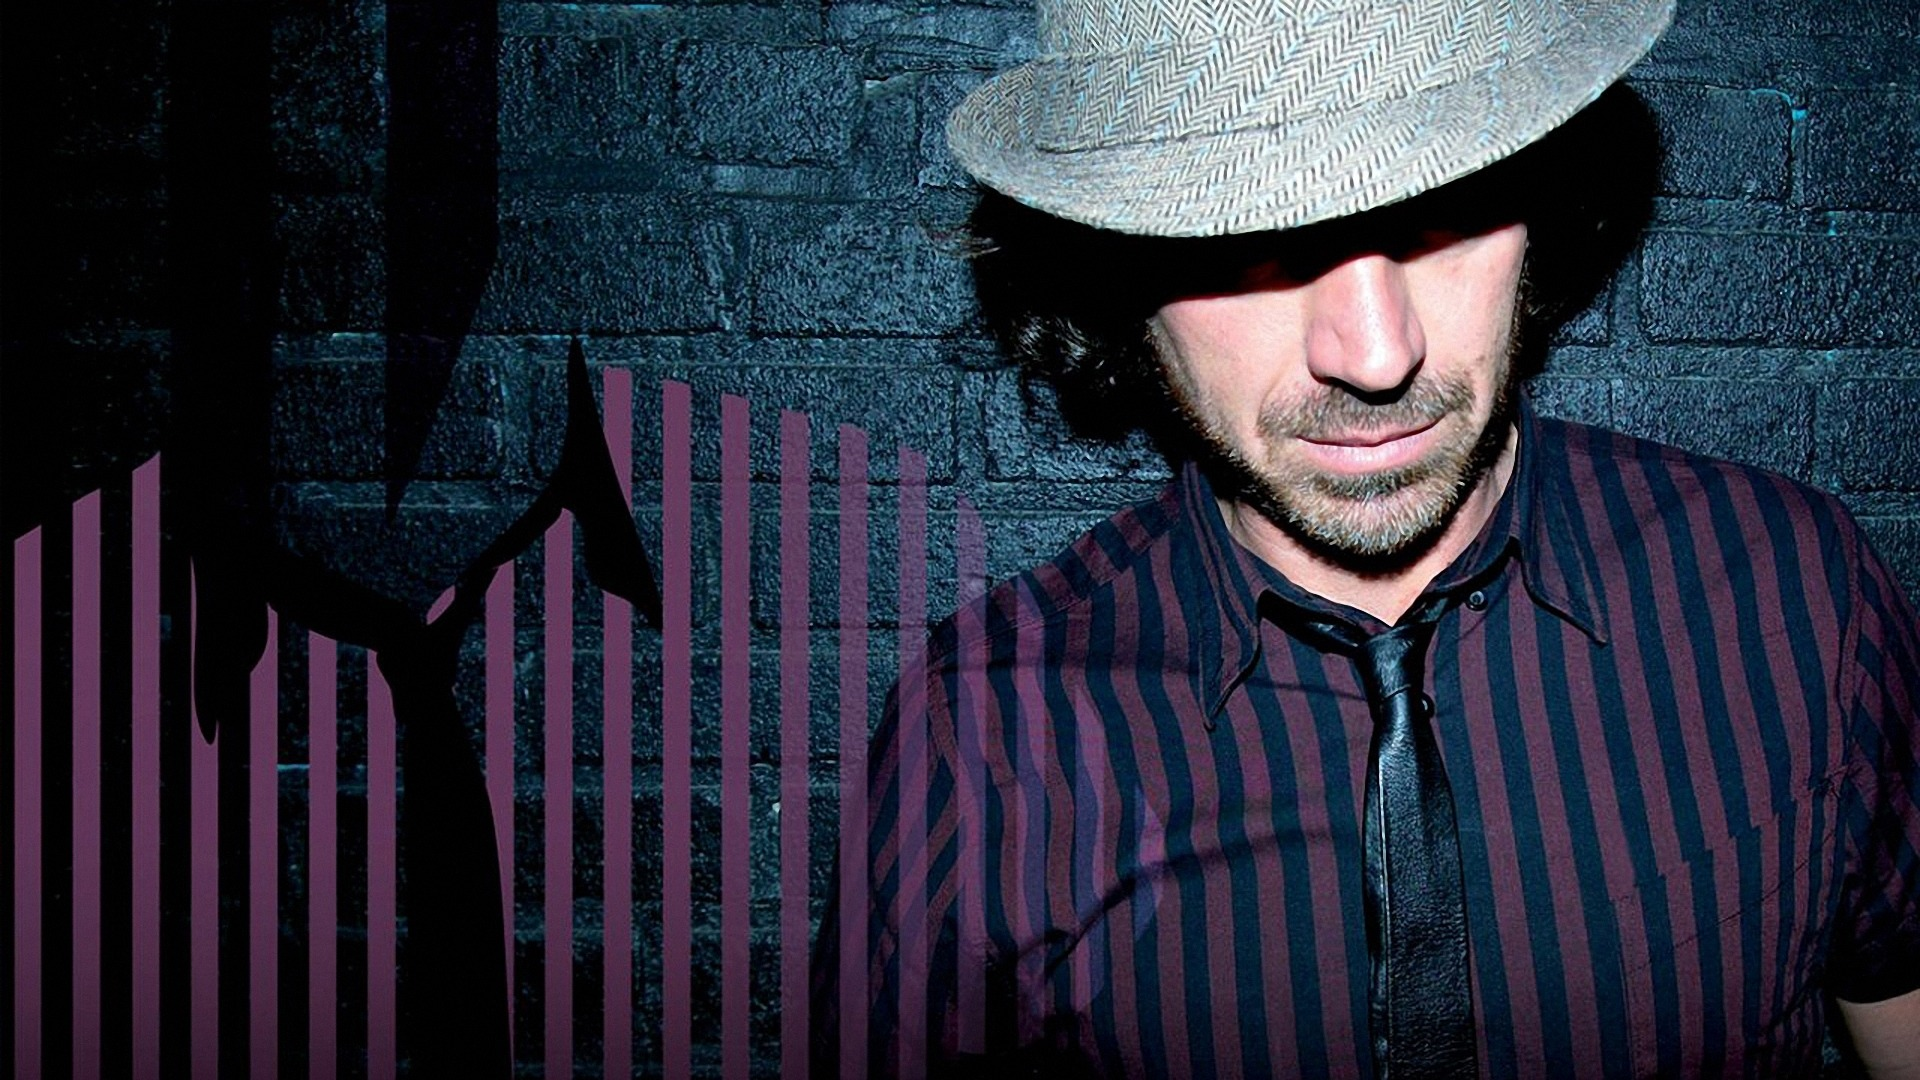 Download wallpaper 1920x1080 benny benassi wall hat light 1920x1080